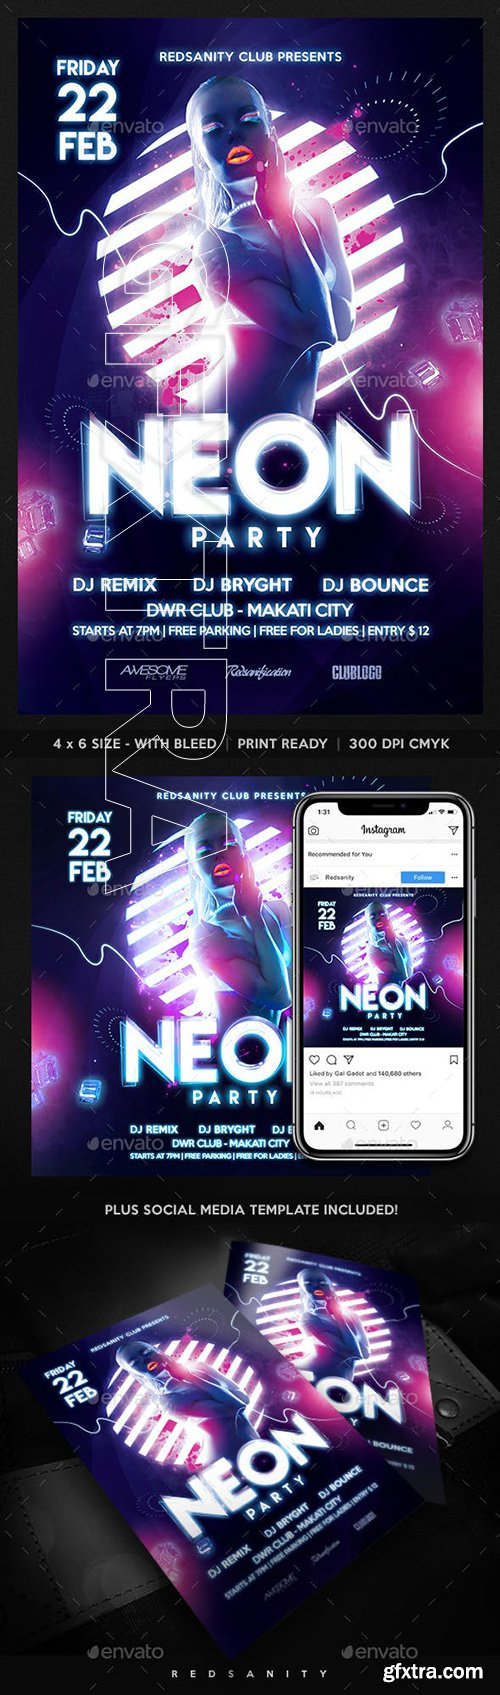 GraphicRiver - Neon Party Flyer 23113805